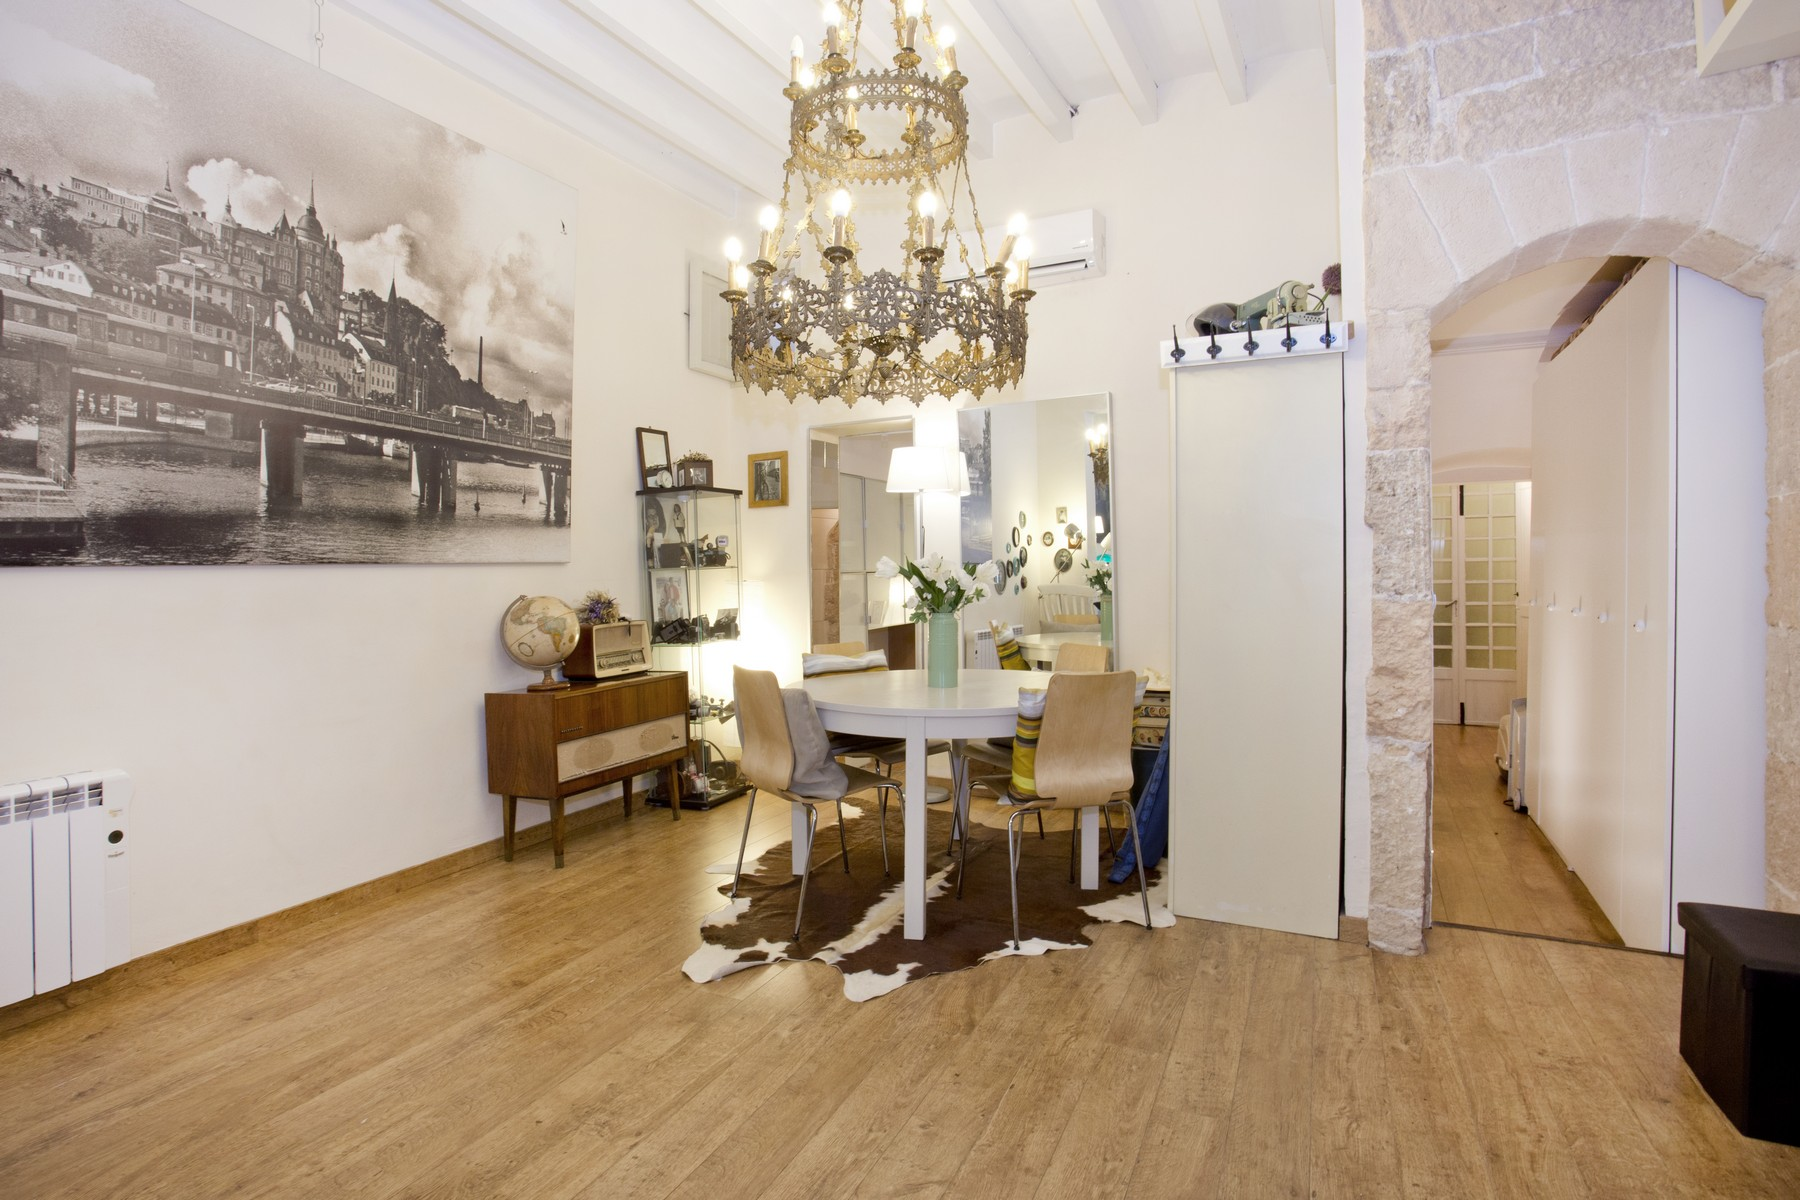 Casa Unifamiliar por un Venta en Charming apartment in Old Town of Palma Palma, Mallorca, 07012 España